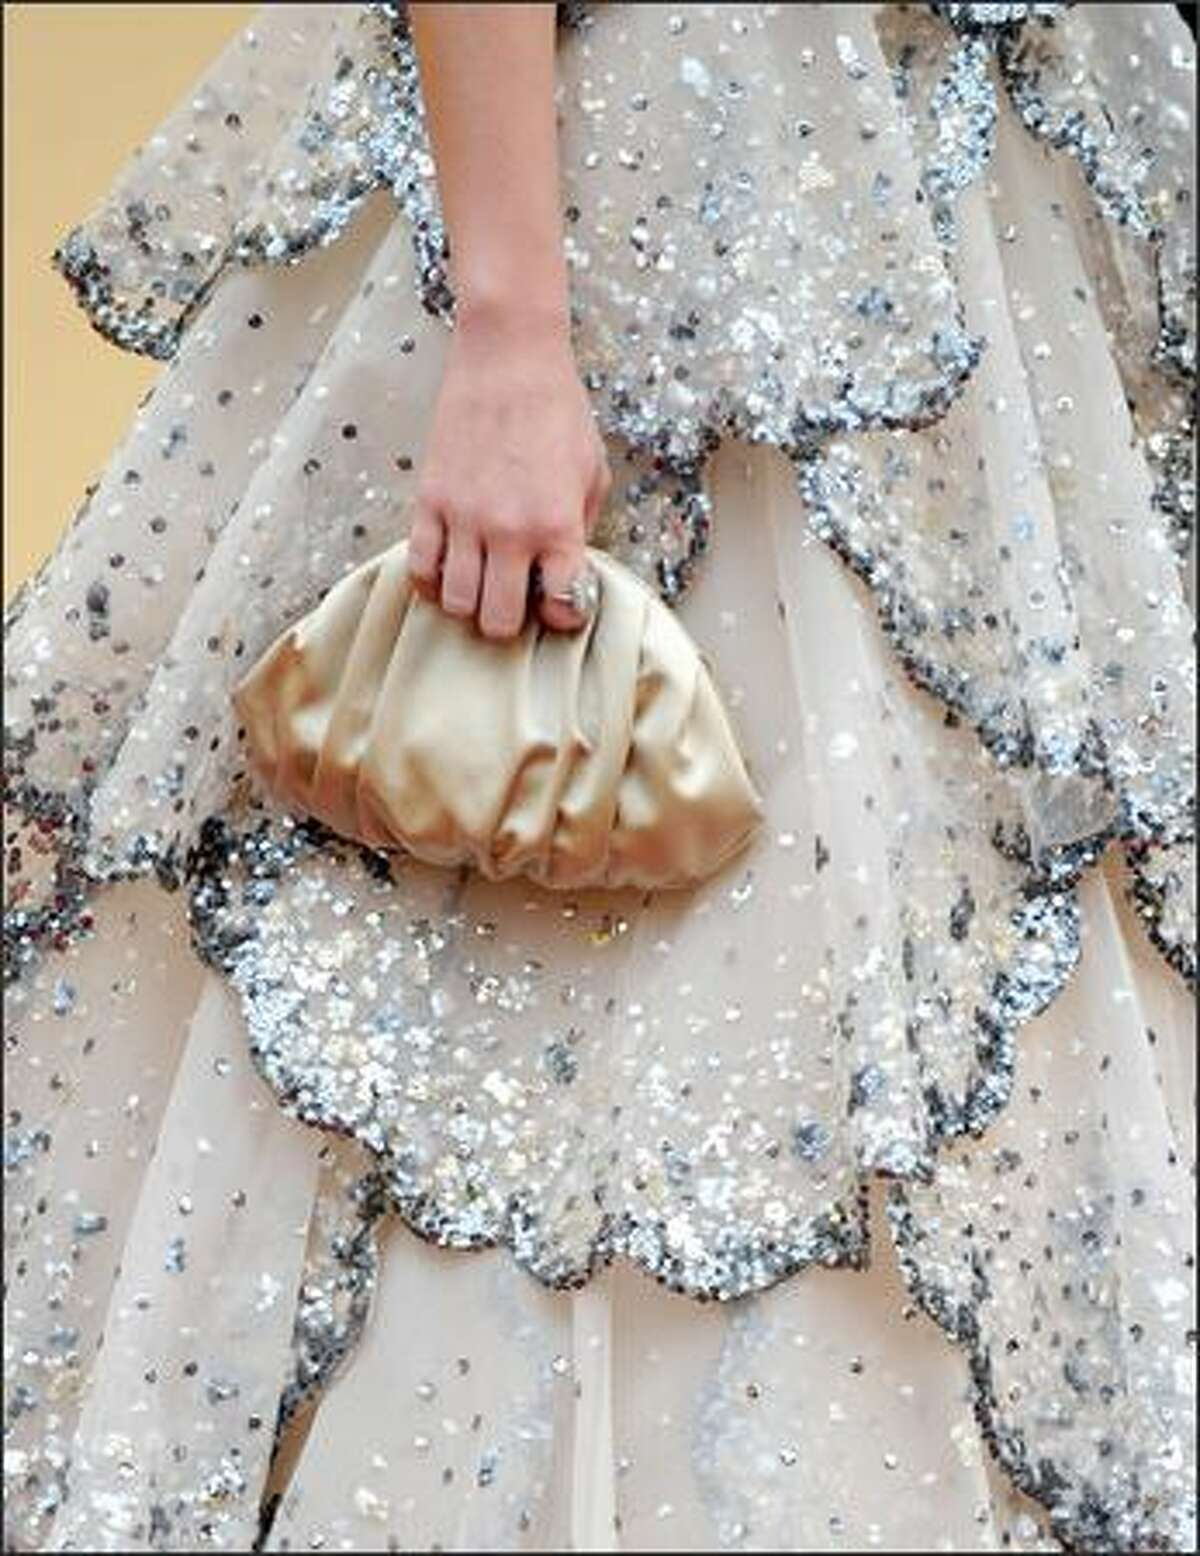 She had the perfect clutch to go with it as well.